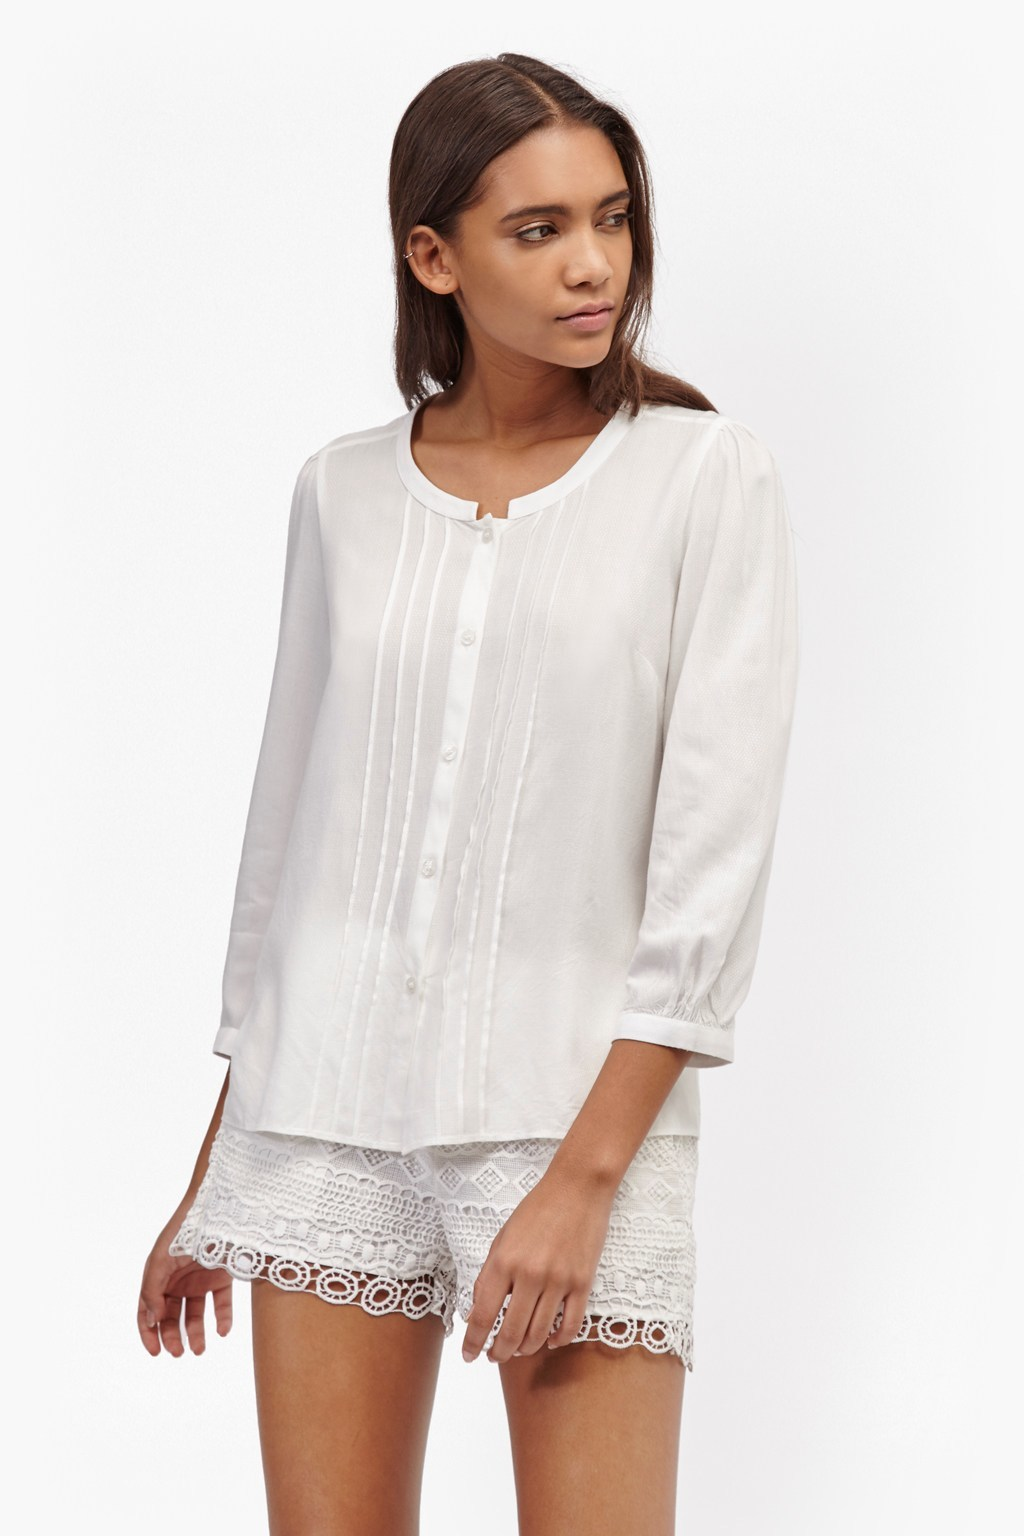 Empire Dot Embroidered Blouse Summer White - pattern: plain; style: blouse; bust detail: ruching/gathering/draping/layers/pintuck pleats at bust; predominant colour: white; occasions: casual; length: standard; neckline: collarstand; fibres: cotton - 100%; fit: straight cut; sleeve length: 3/4 length; sleeve style: standard; texture group: cotton feel fabrics; pattern type: fabric; season: s/s 2016